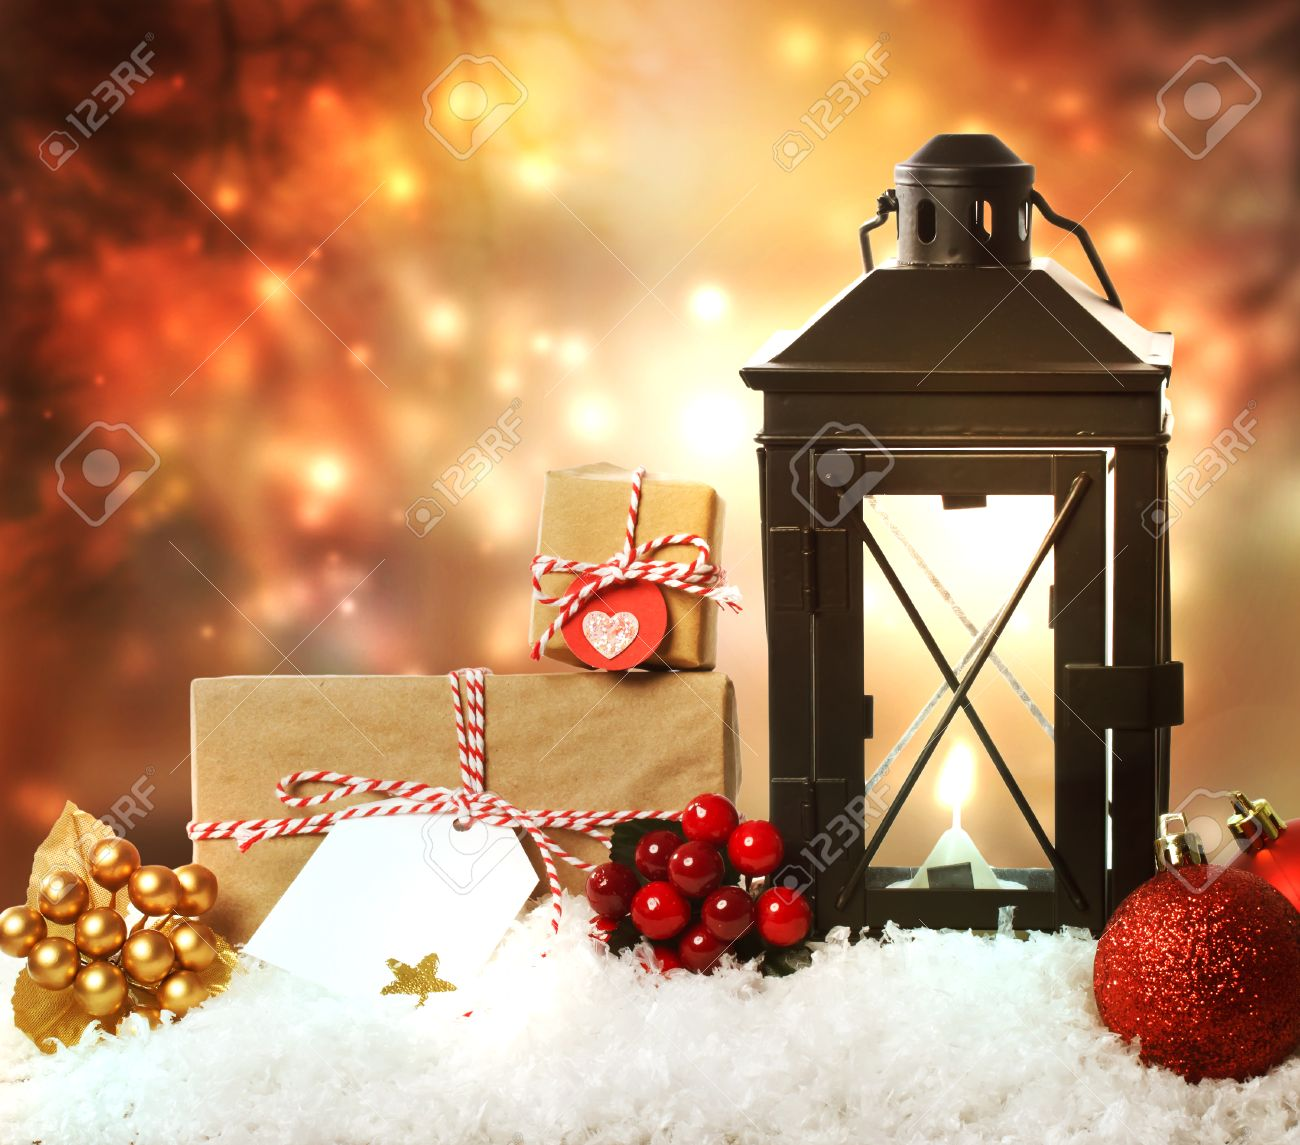 Christmas Lantern With Presents, Ornaments And Snow Stock Photo ...